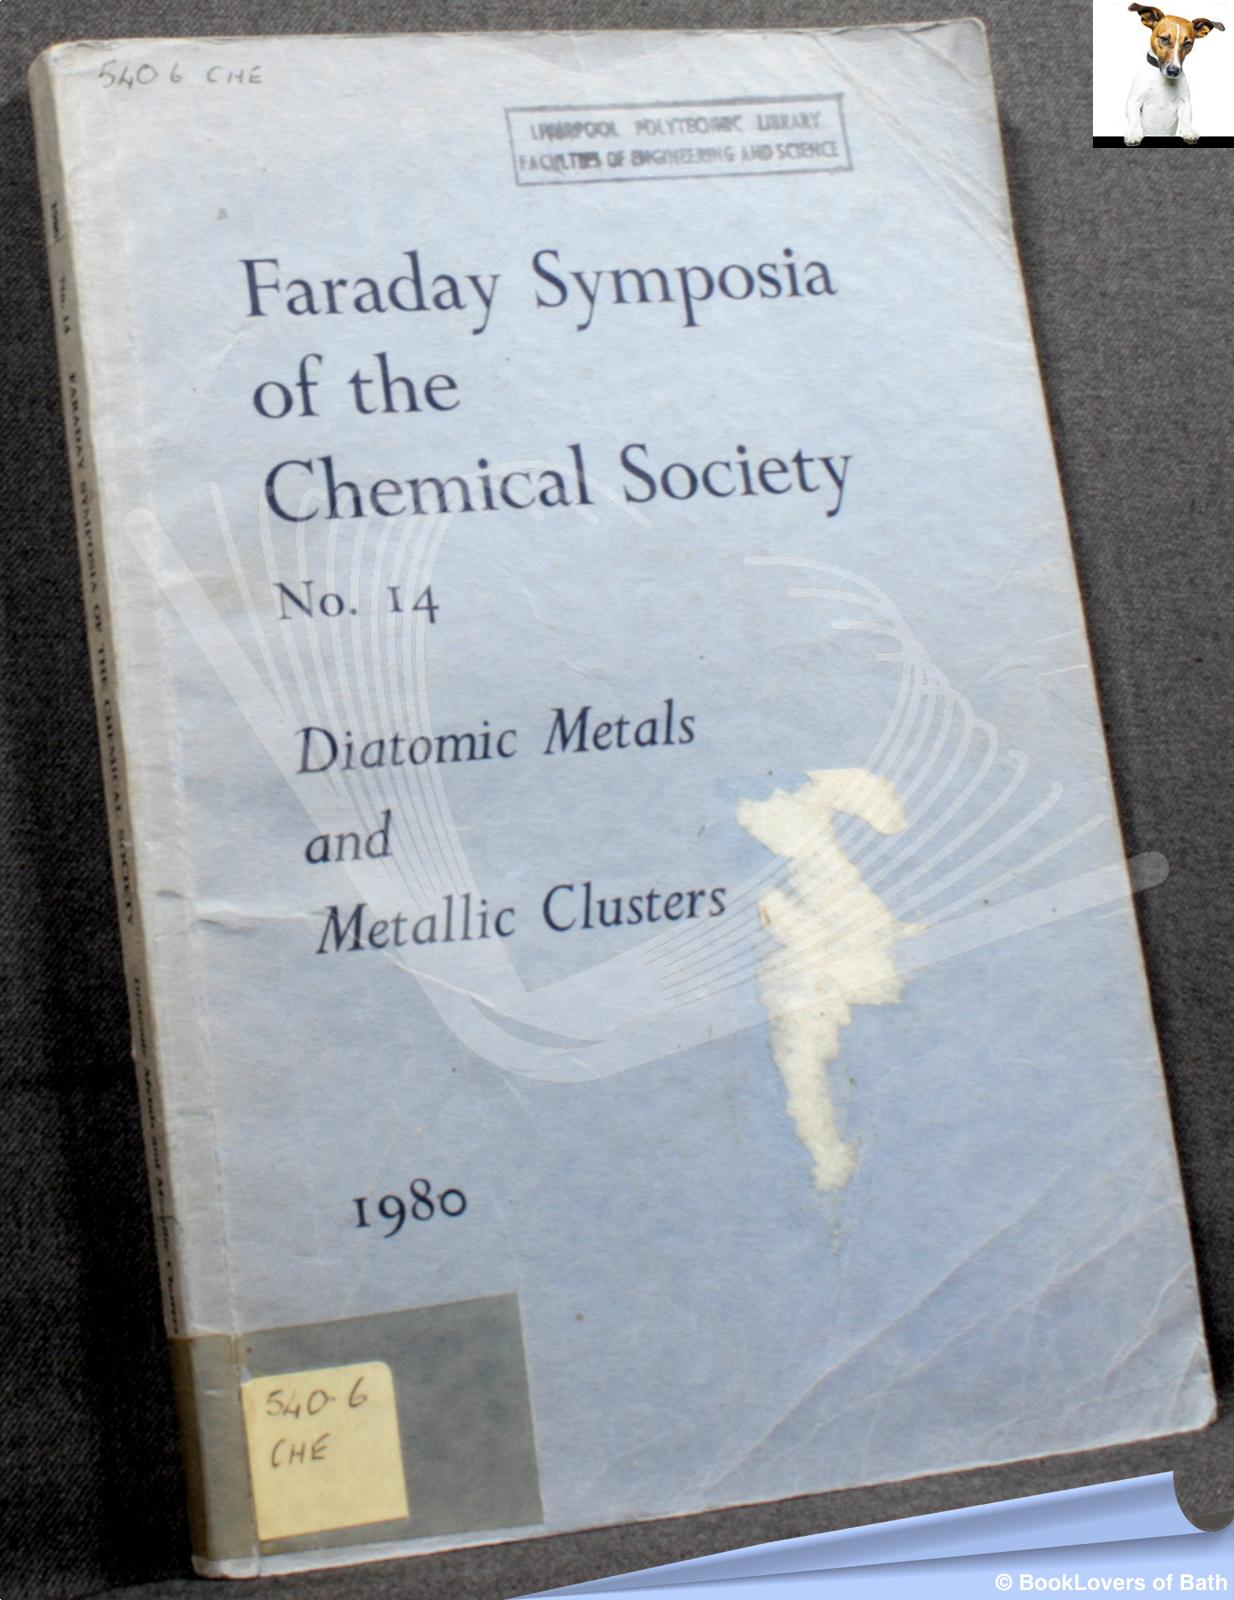 Faraday Symposia of the Chemical Society No. 14 Diatomic Metals and Metallic Clusters - Anon.